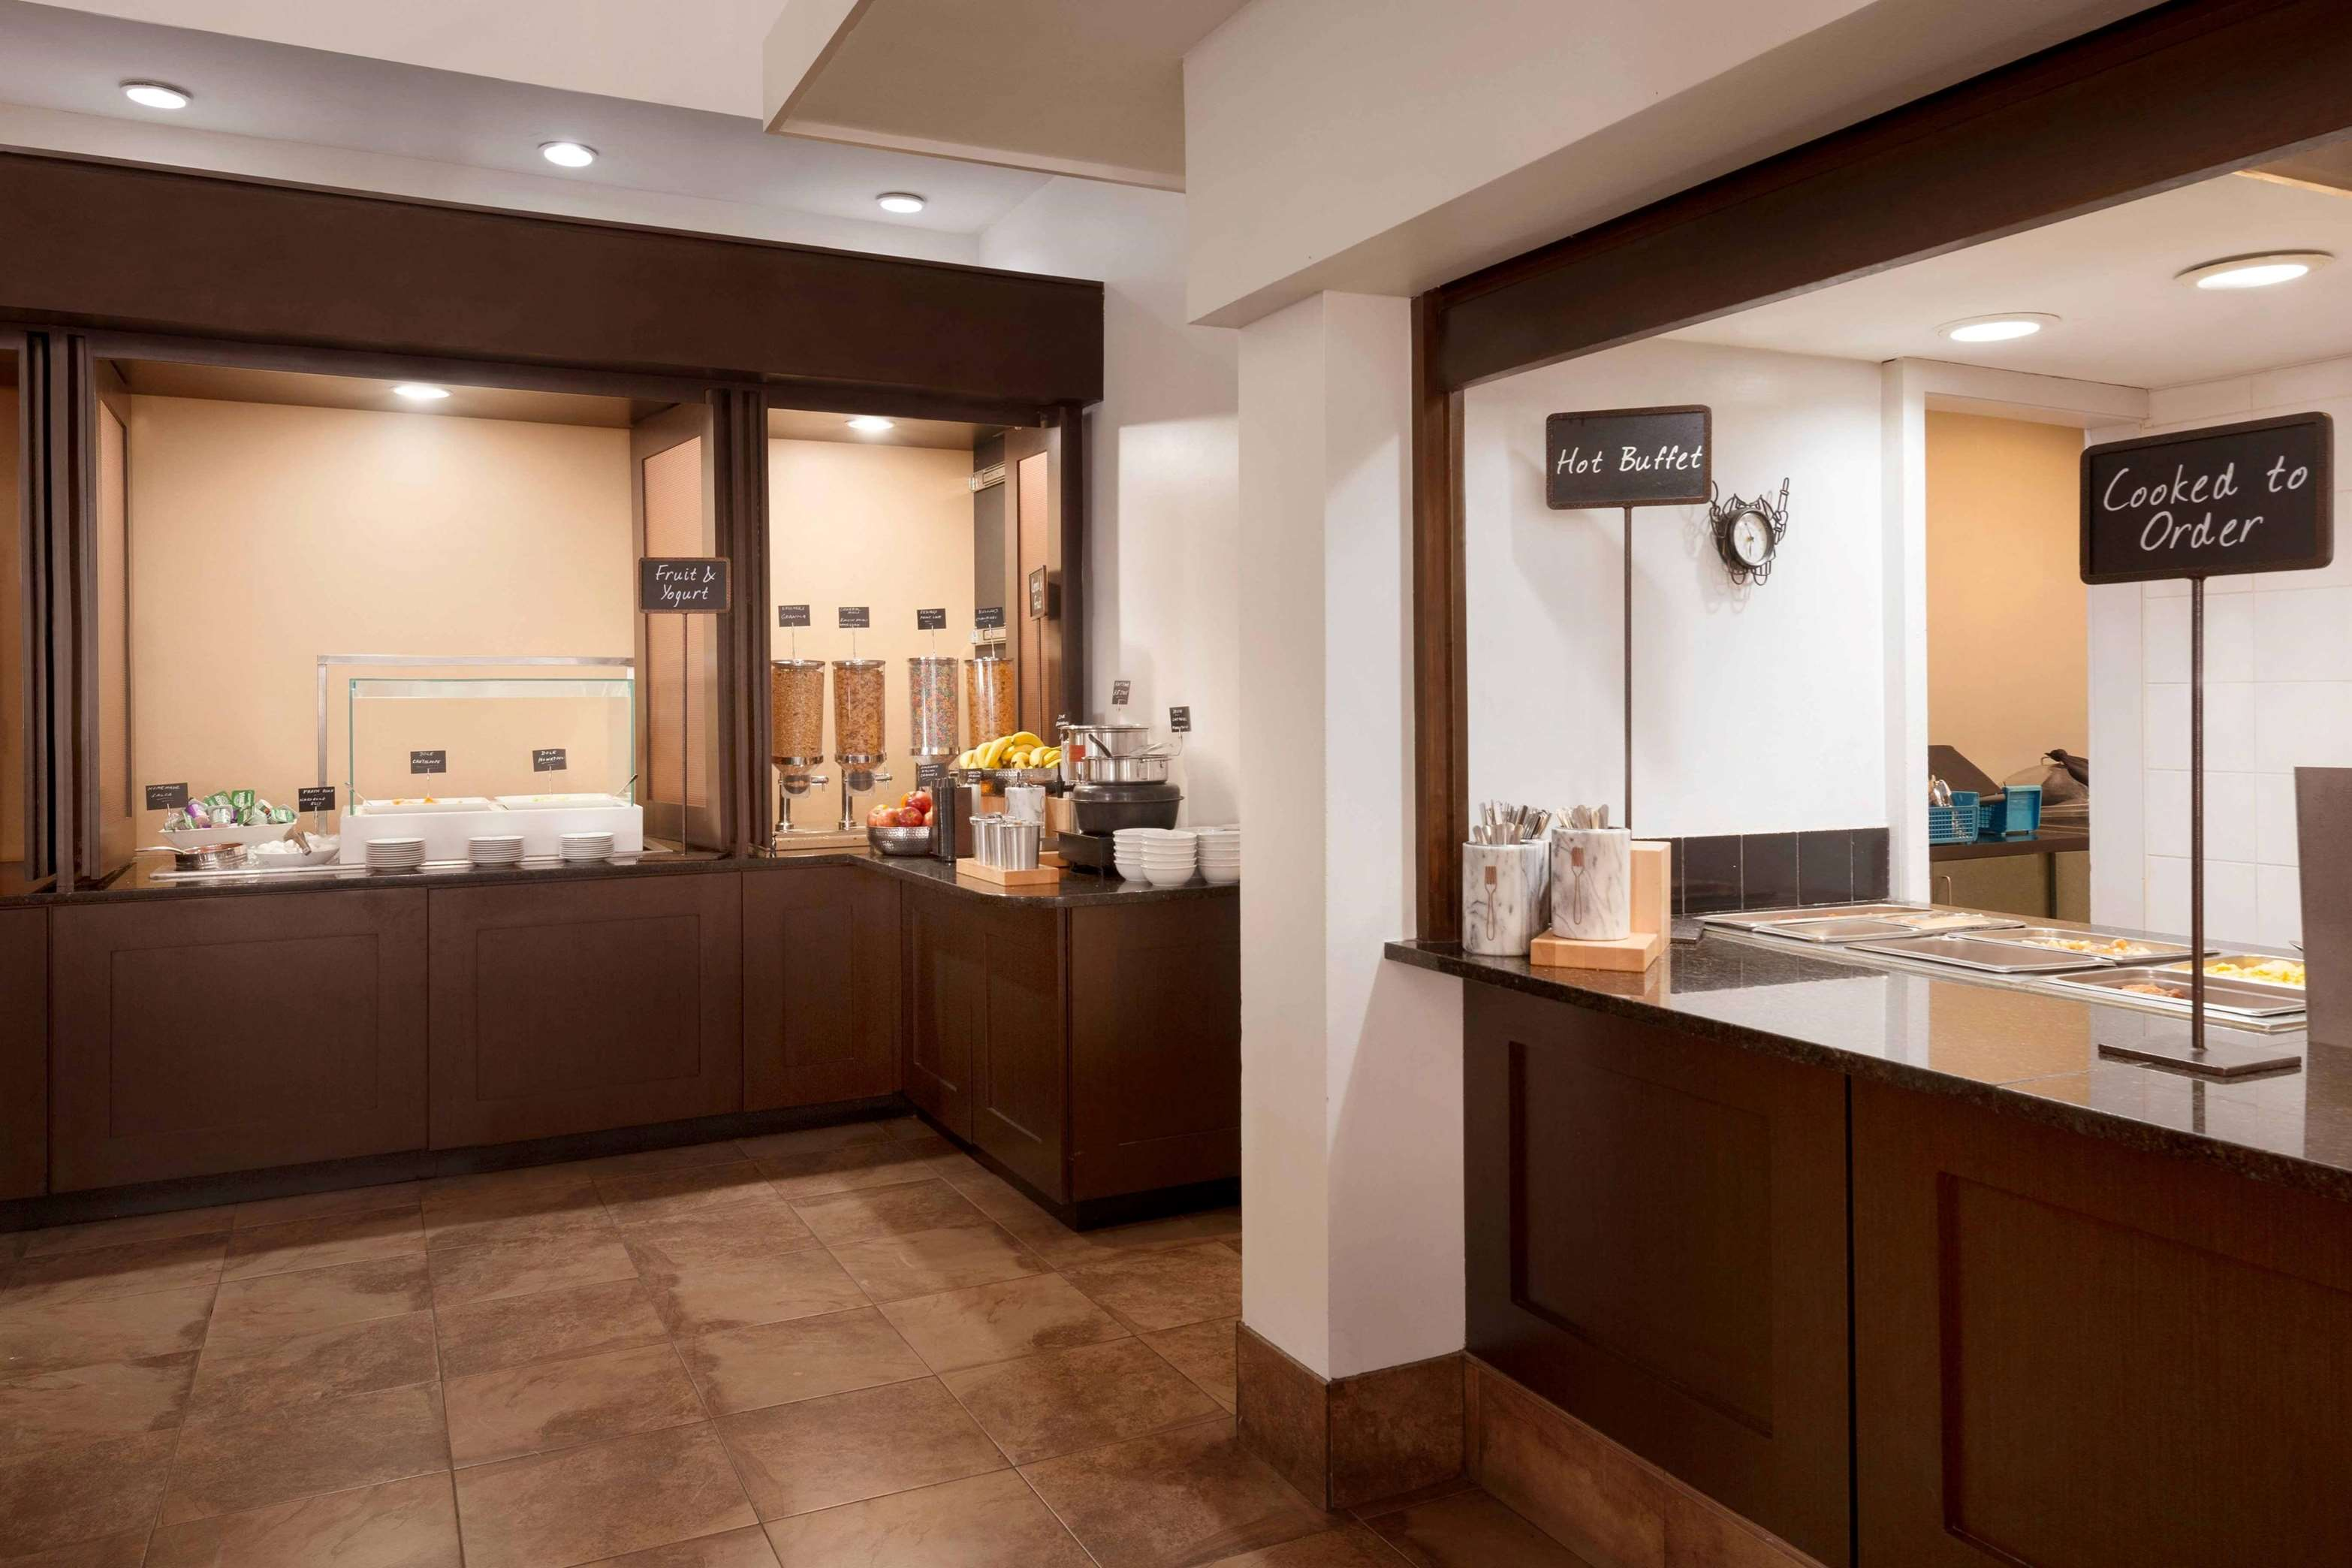 Embassy Suites by Hilton Baltimore at BWI Airport image 38